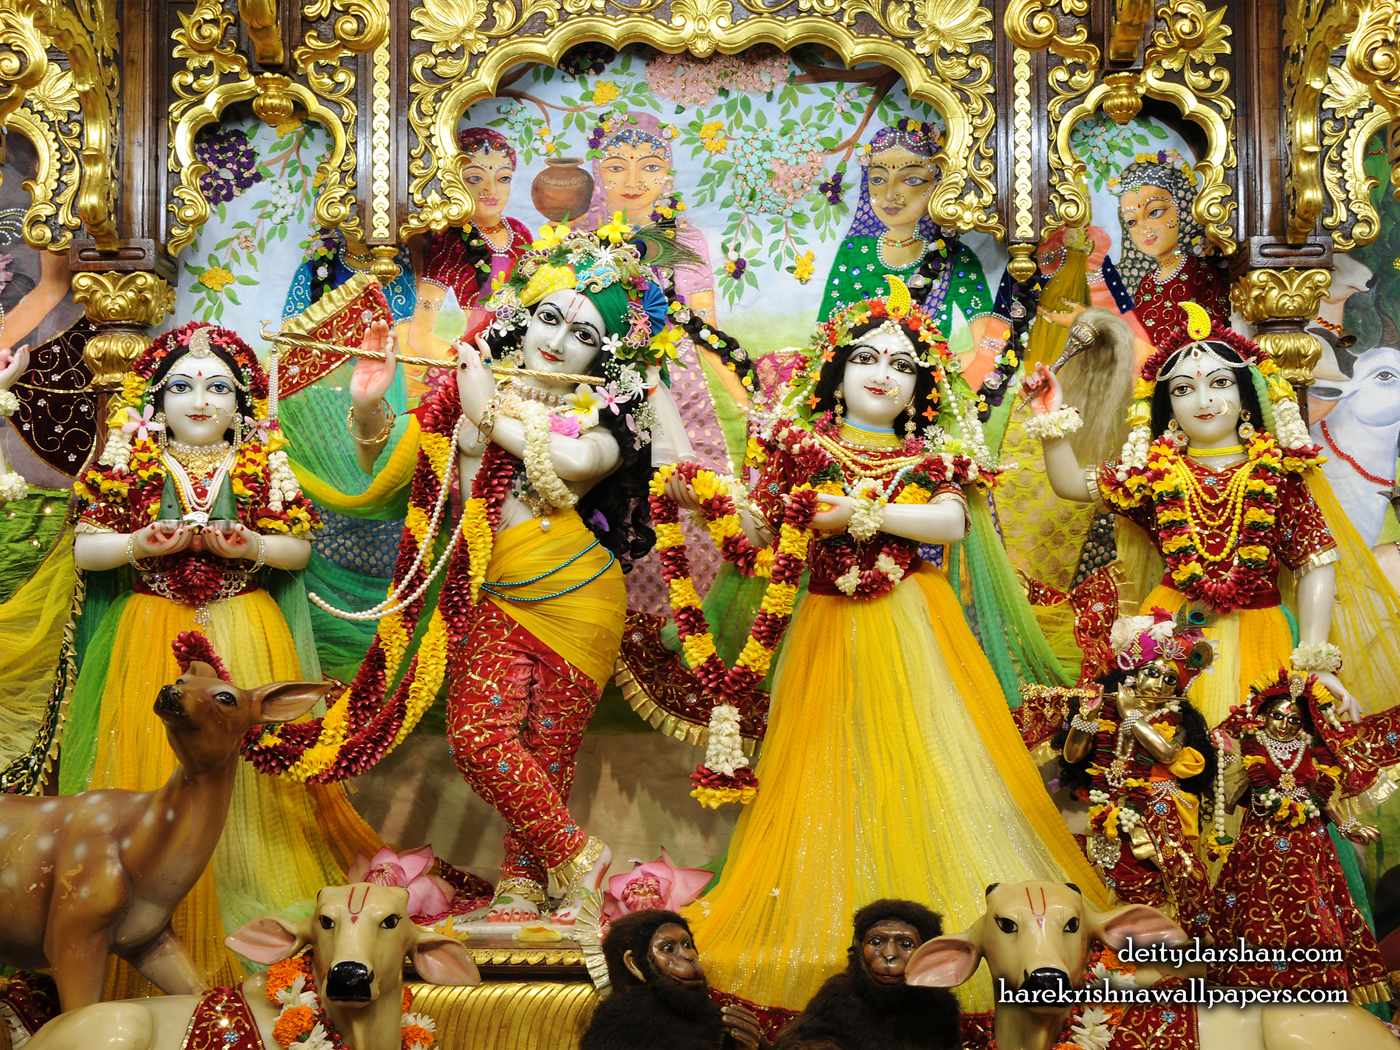 Sri Sri Radha Gopinath Lalita Vishakha Wallpaper (059) Size 1400x1050 Download